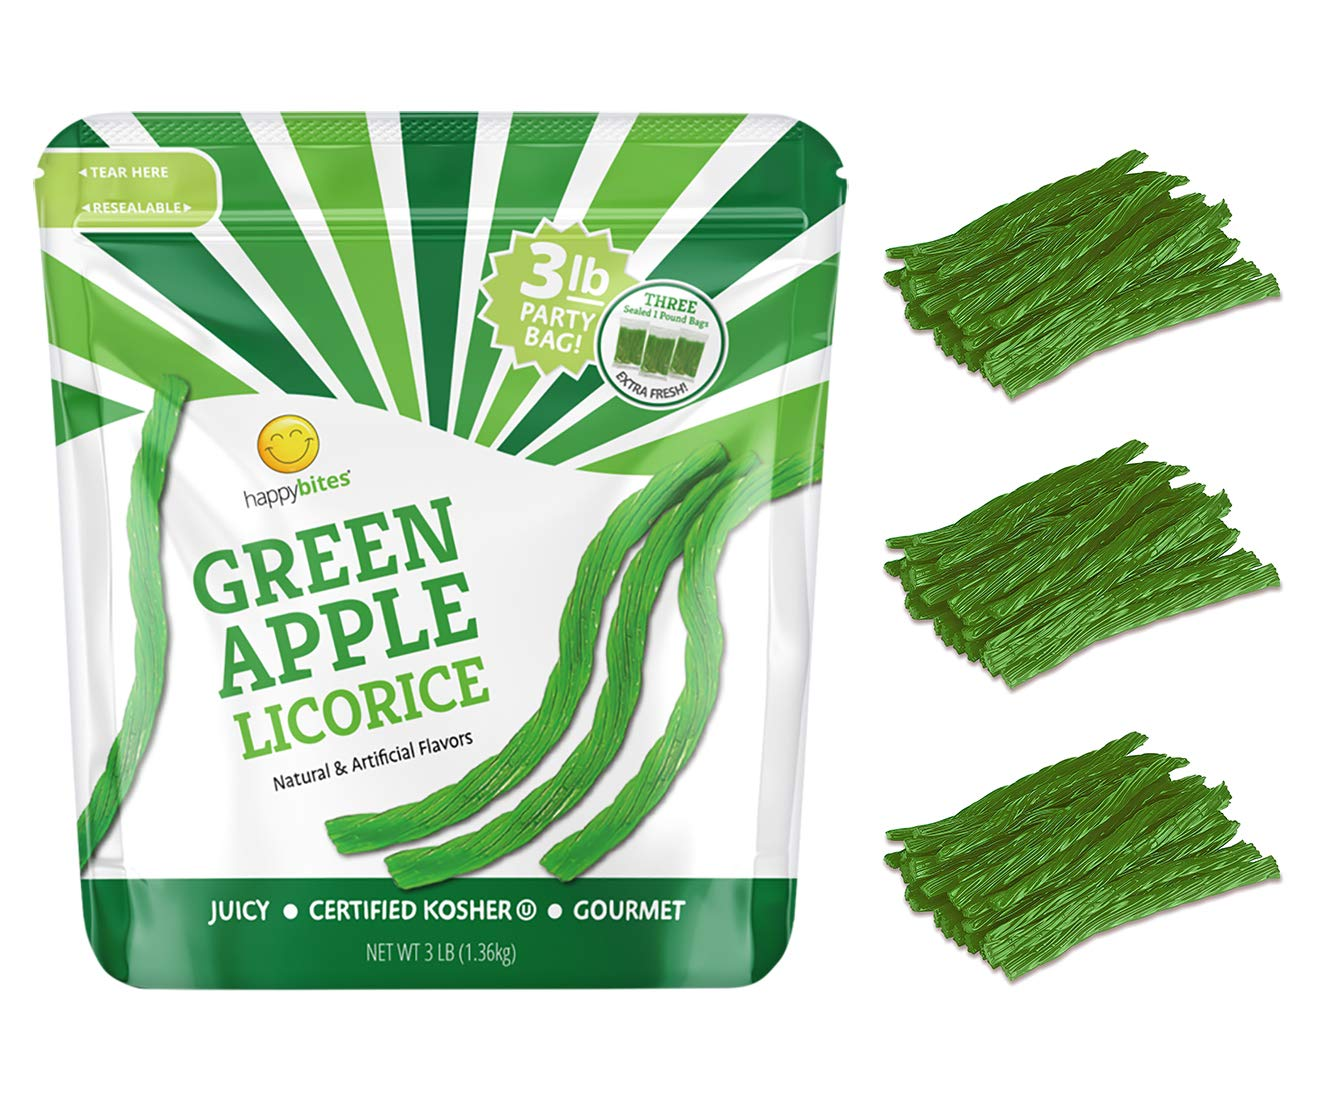 Happy Bites Green Apple Licorice Twists Party Bag - Certified Kosher - Gourmet - Low Fat - Made with Real Fruit Juice (3 Pound Bulk)